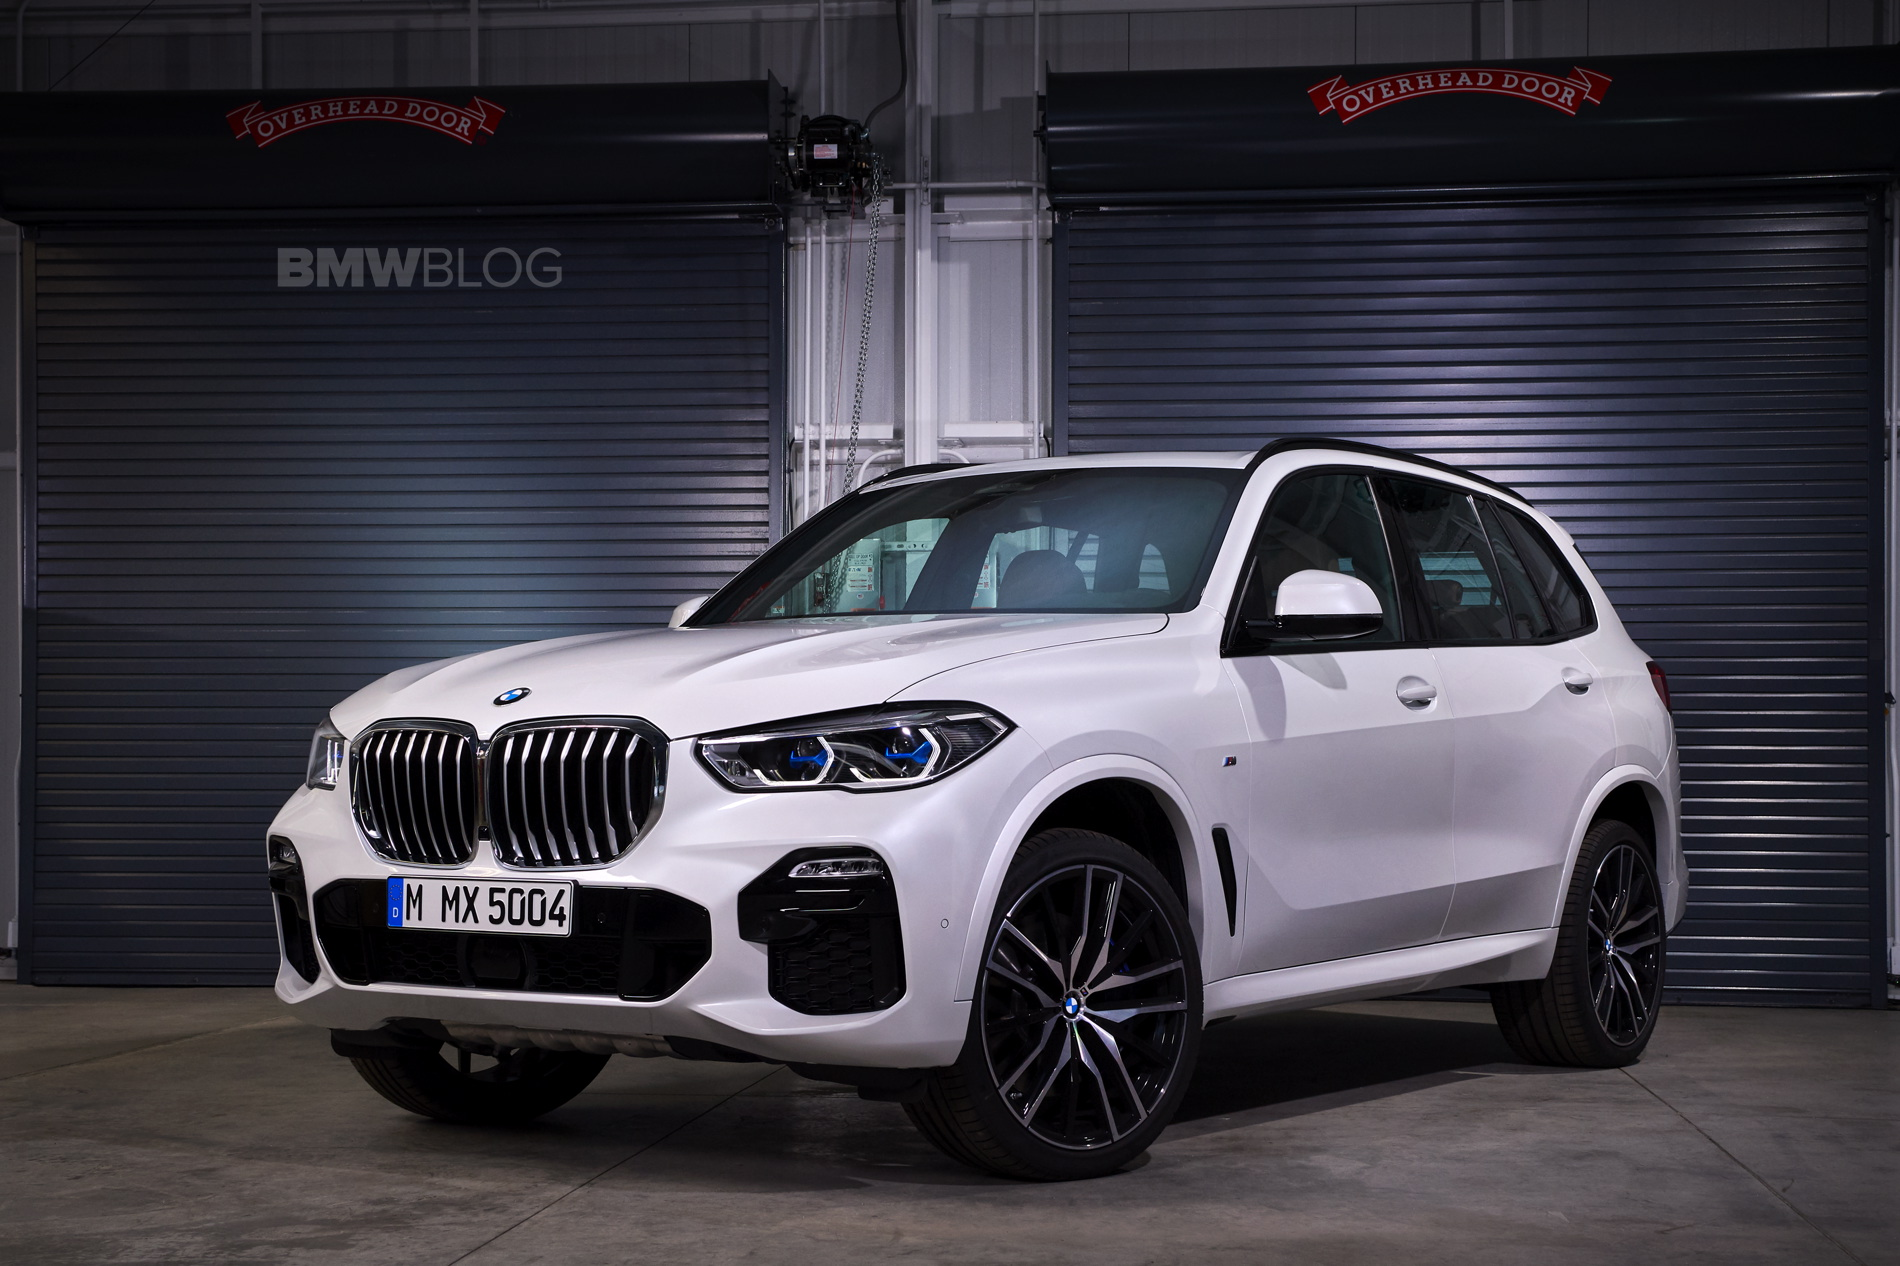 2018 Bmw X1 Vs X3 >> VIDEO: Carwow talks about the new BMW X5